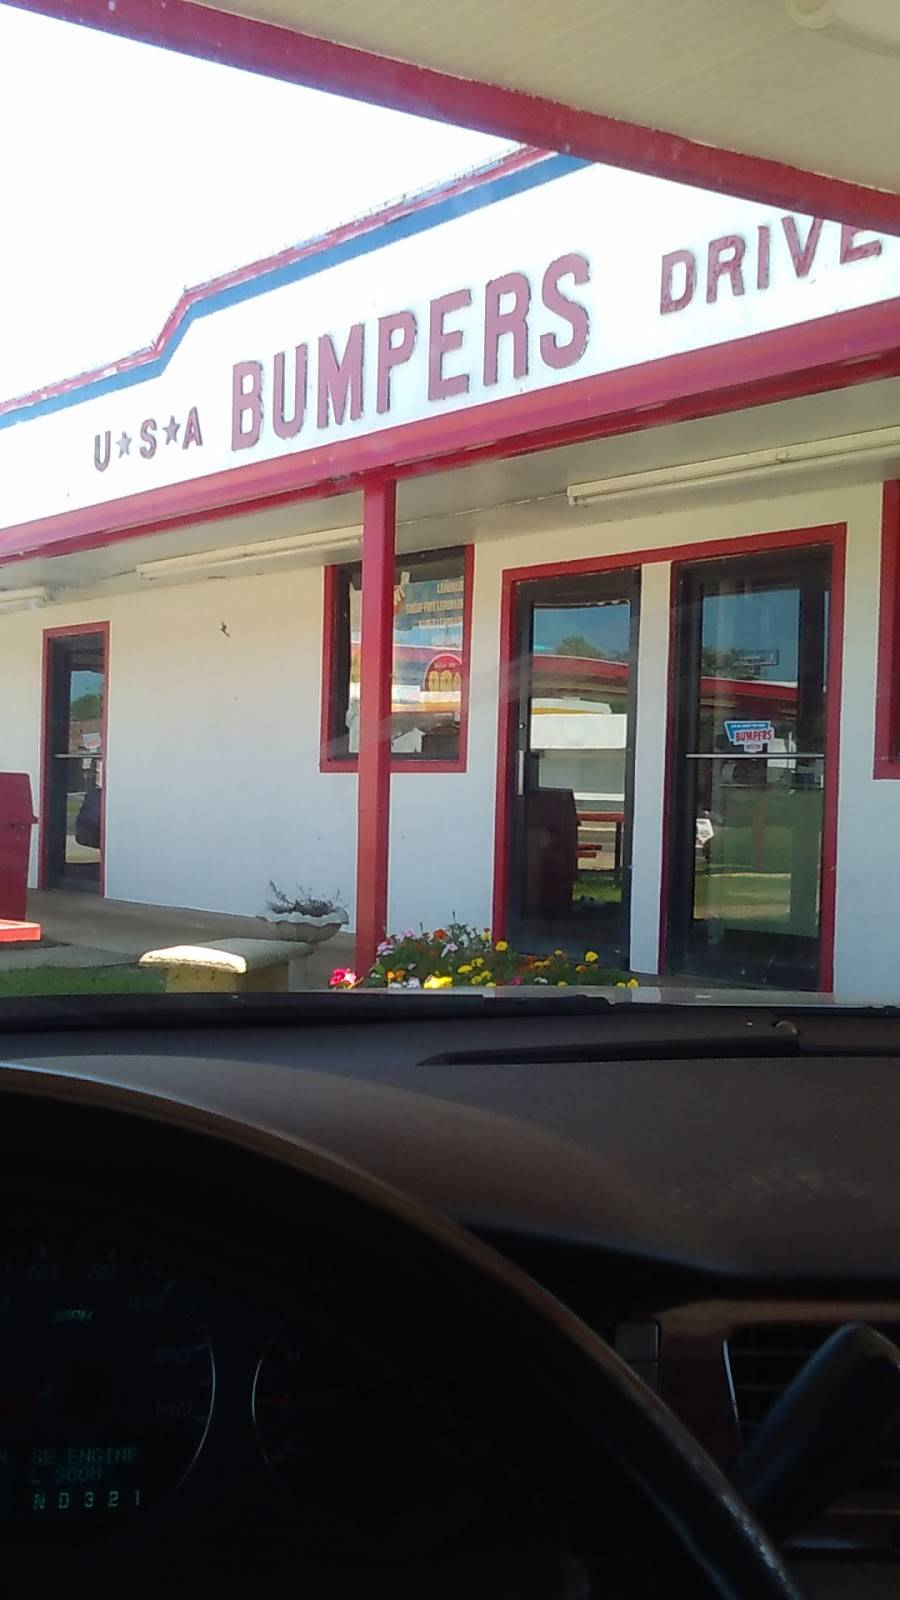 Bumpers Drive-In of America | restaurant | 605 Jefferson St, Macon, MS 39341, USA | 6627269555 OR +1 662-726-9555